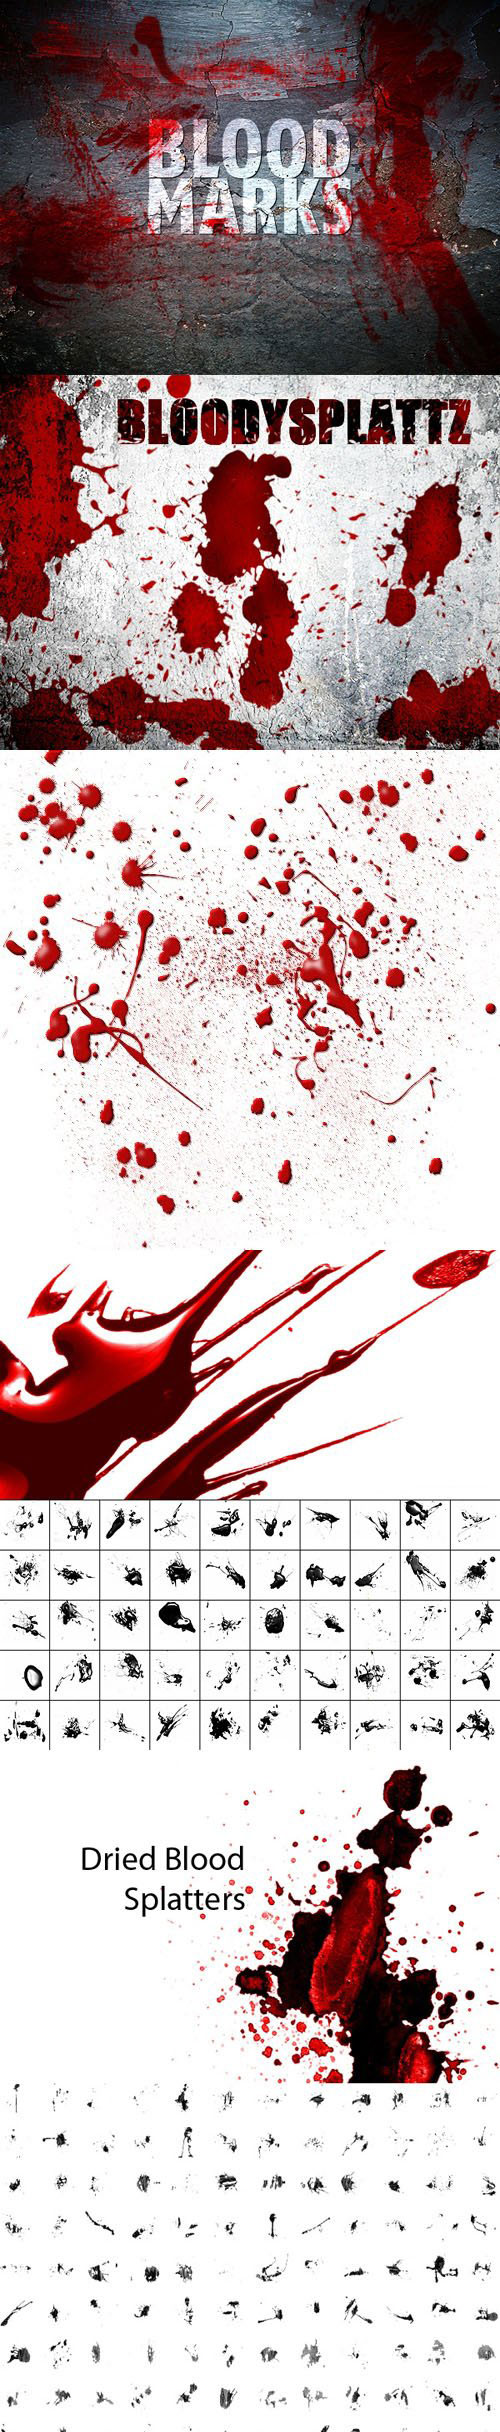 Blood Brushes 5 ABR 2 ASL 5 PNG.231220